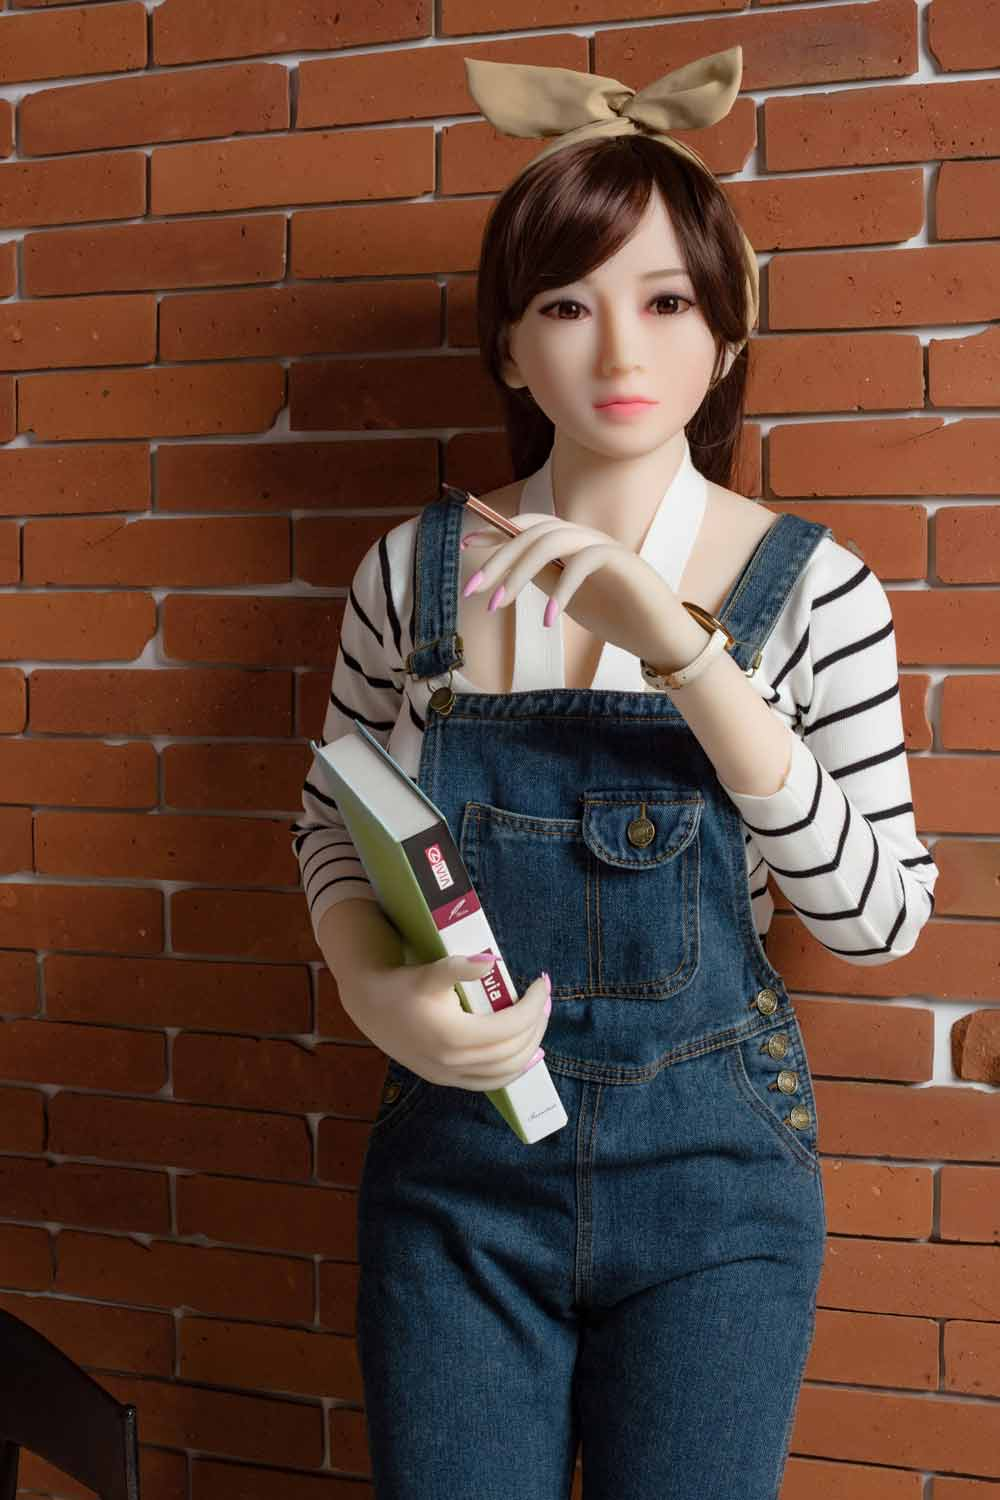 Sex doll with a book in one hand and a pen in one hand